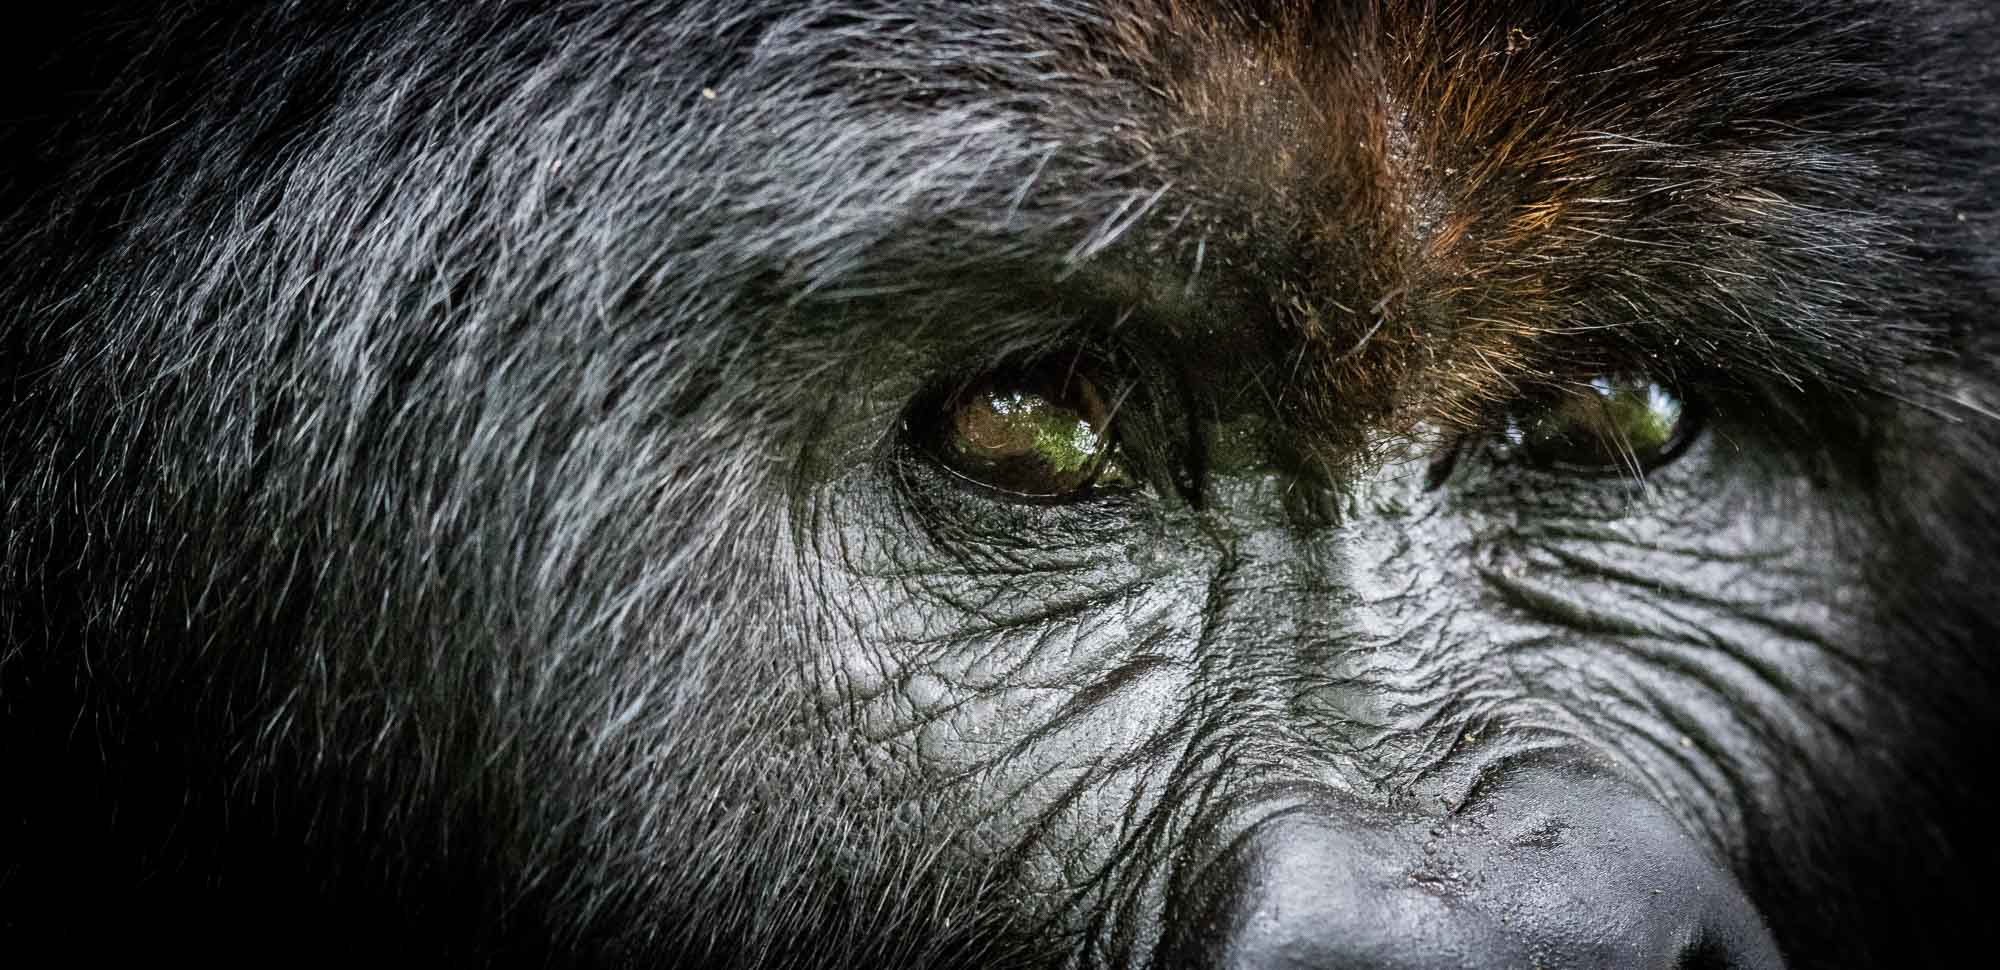 Mountain gorilla in Virunga - copyright Scott Ramsay www.LoveWildAfrica.com